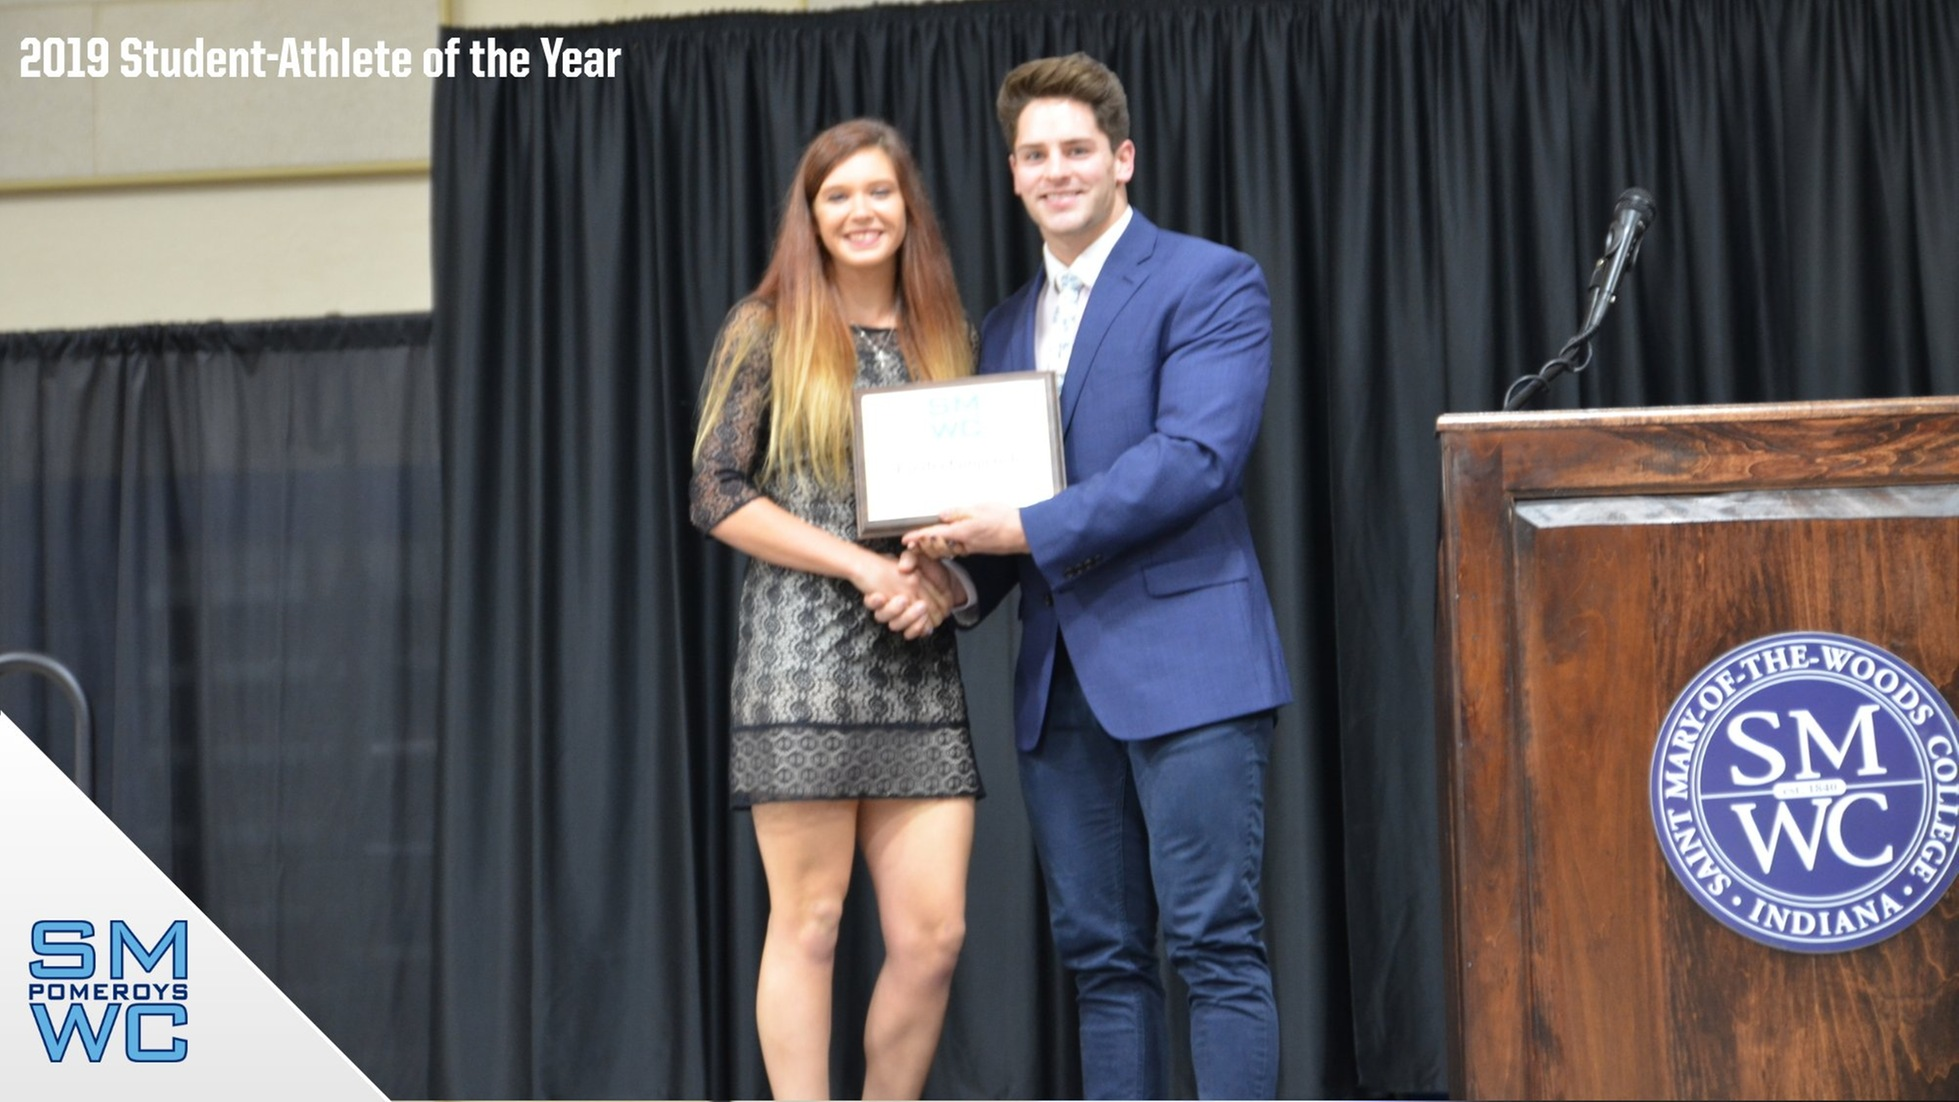 Kindra Gingerich Named Student-Athlete of the Year